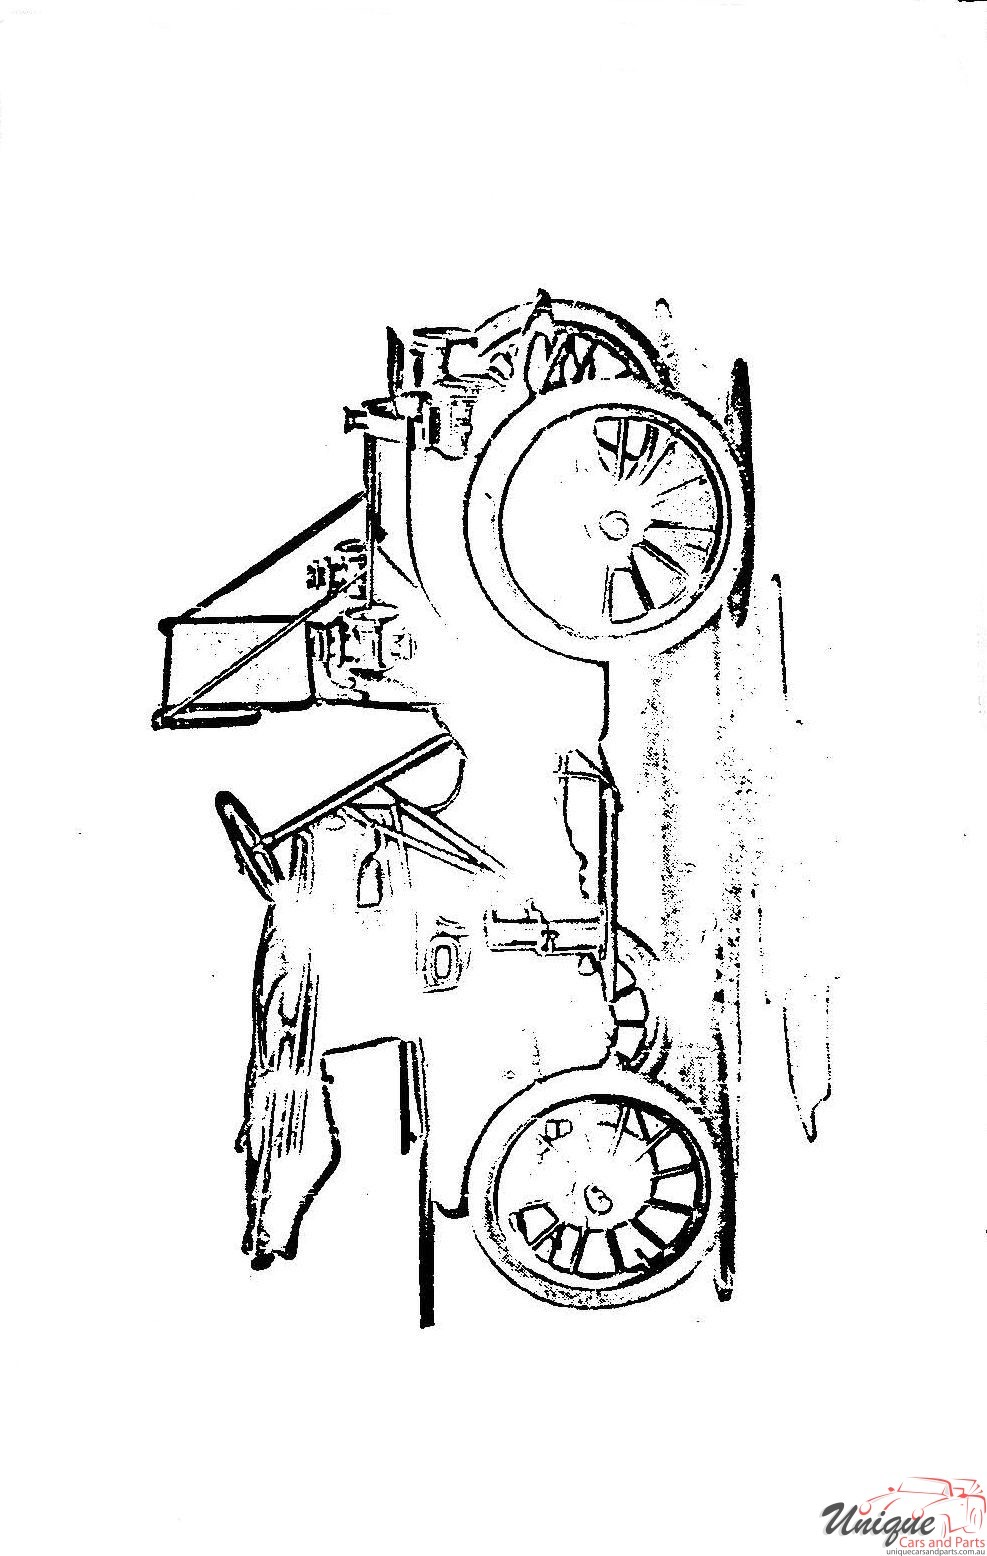 1910 Buick Model 14 Operating Instructions